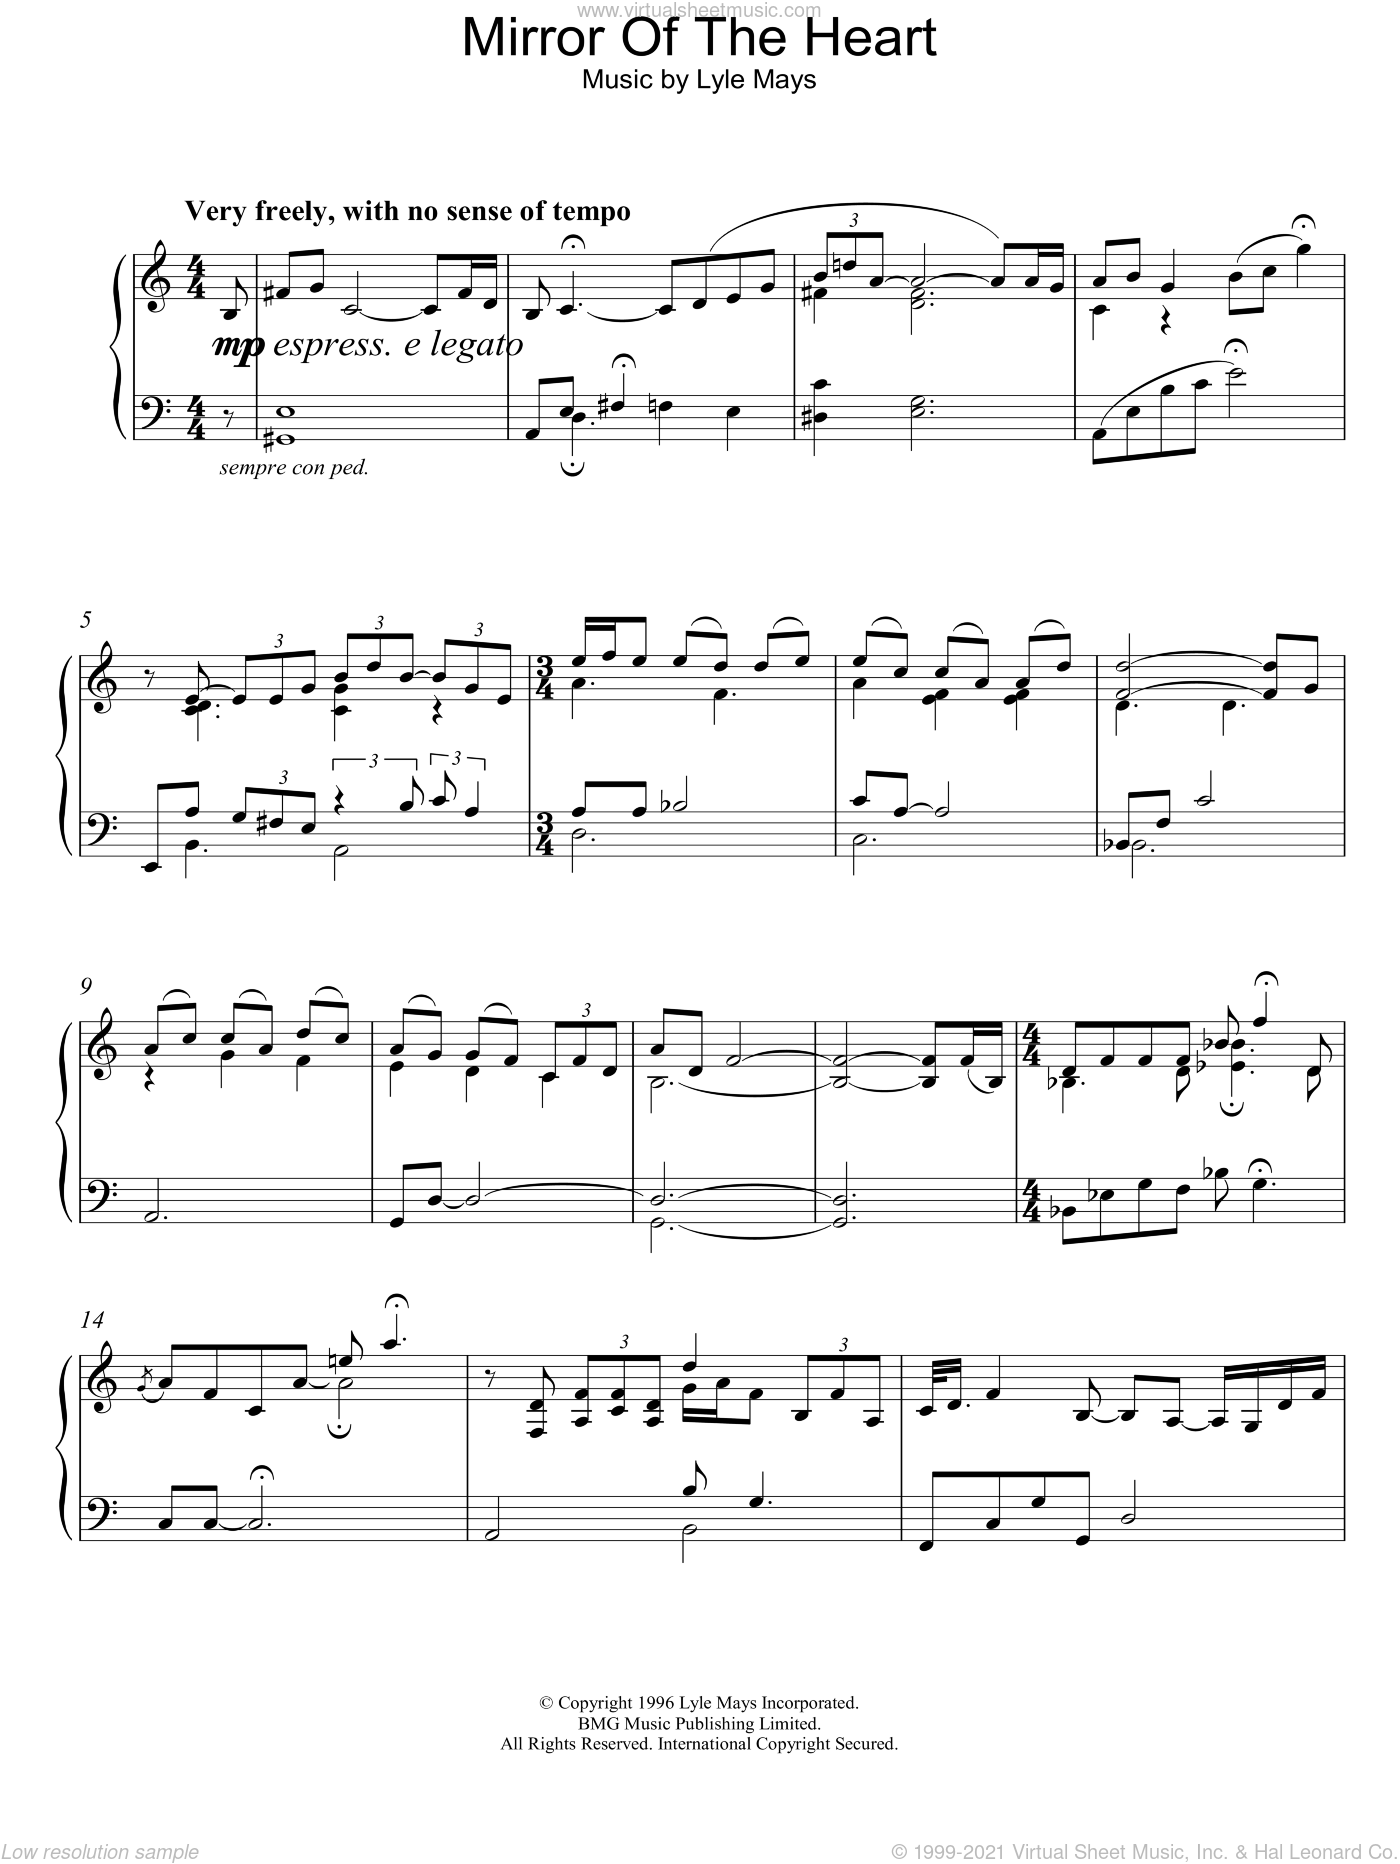 Mirror Of The Heart sheet music for piano solo by Lyle Mays